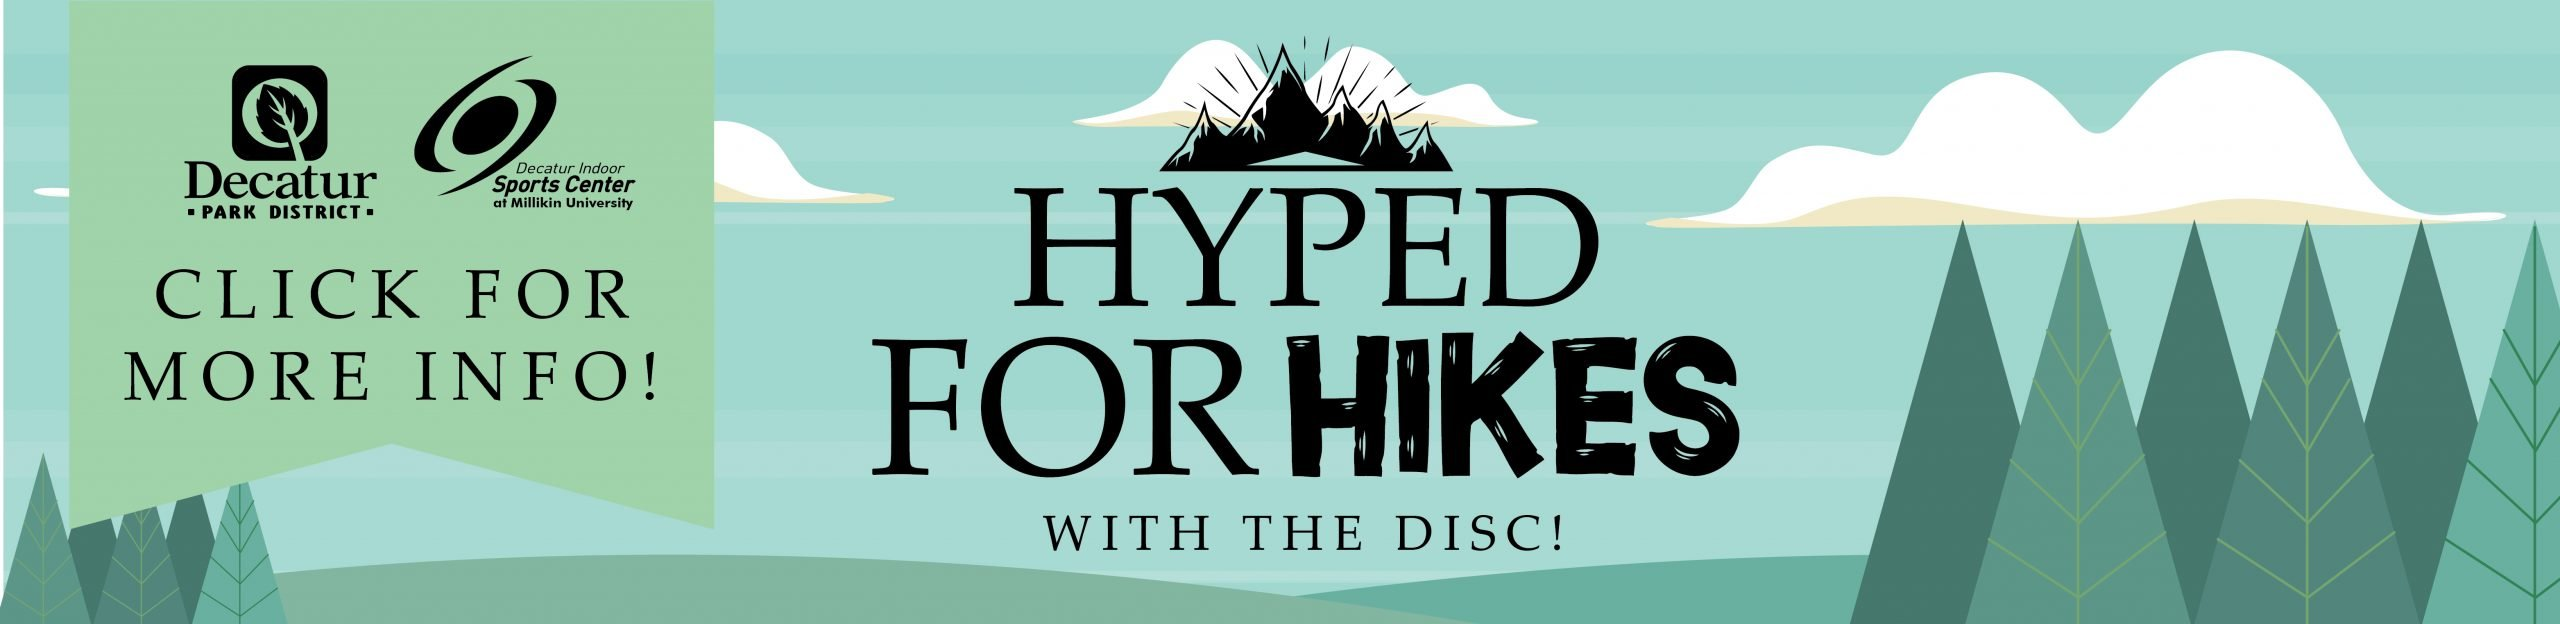 Hyped-for-Hikes_2020-01